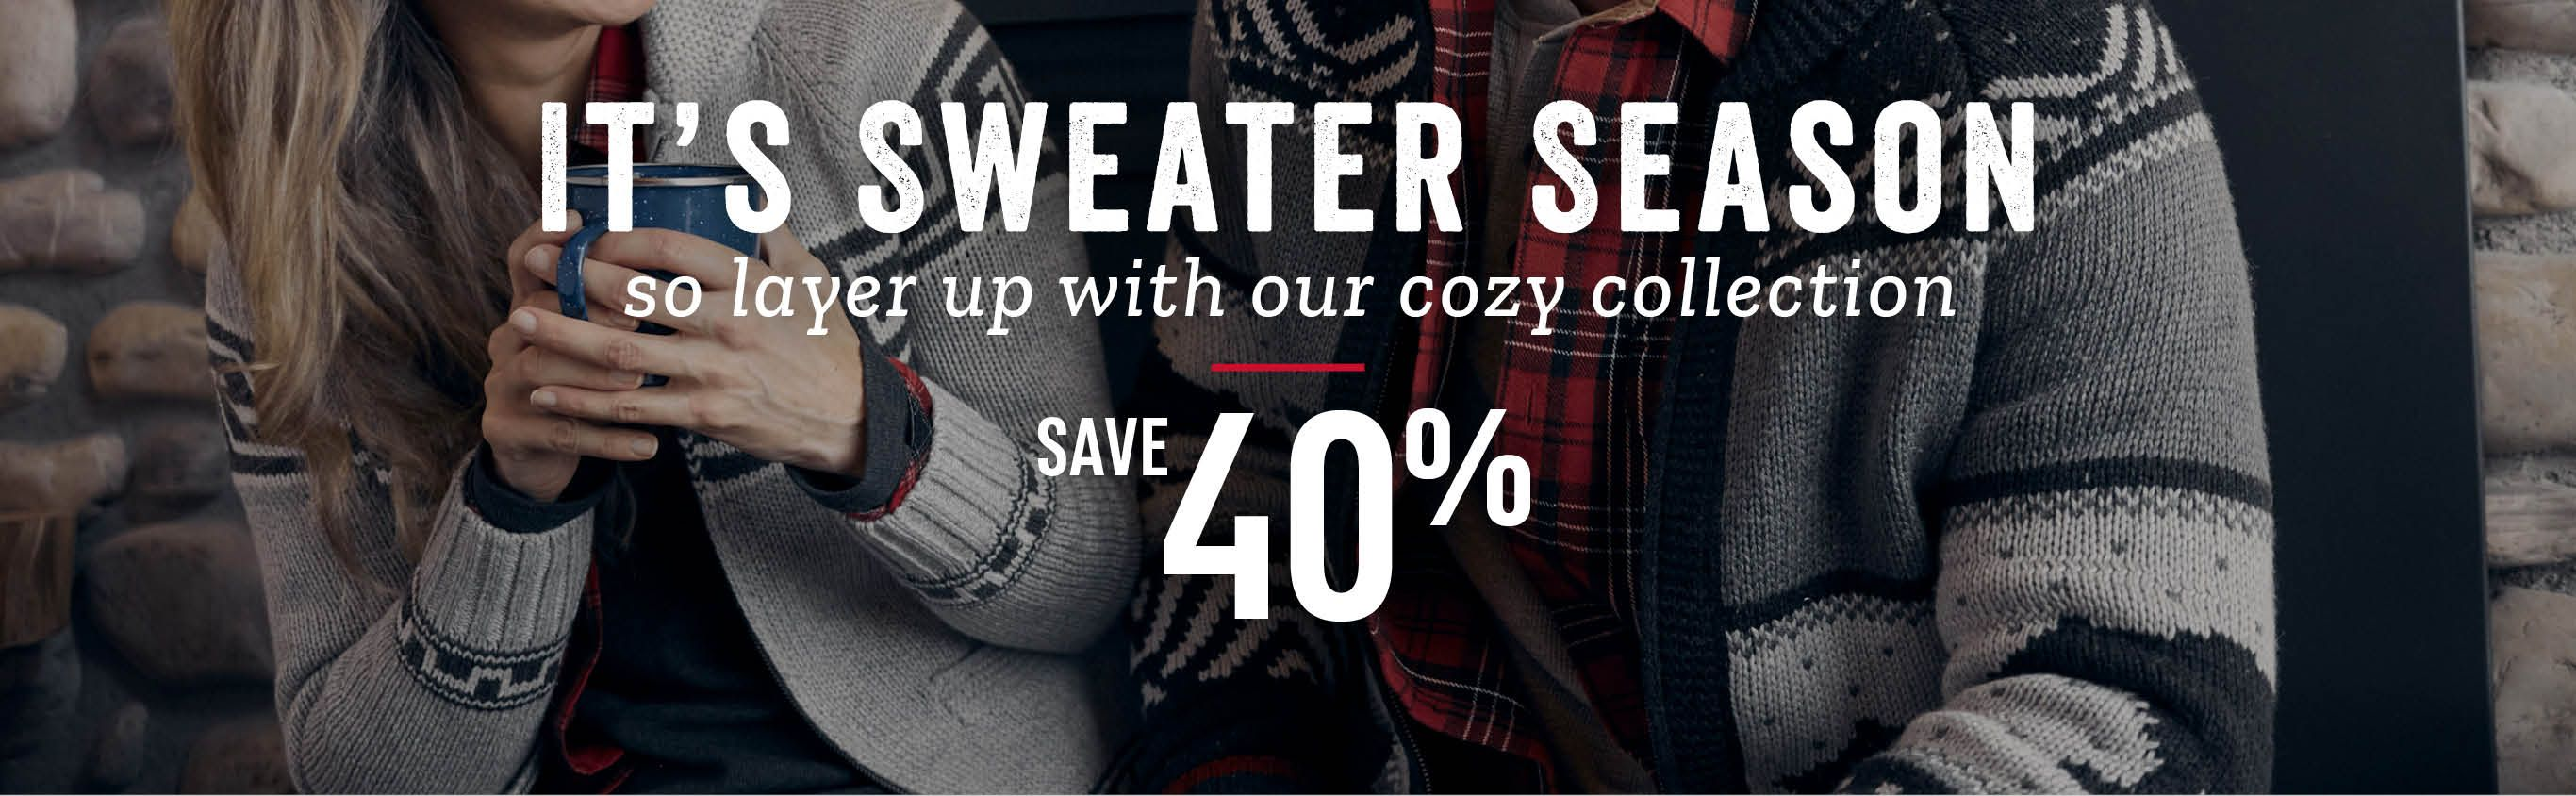 It's Sweater Season, so layer up with our cozy collection. Save 40%.